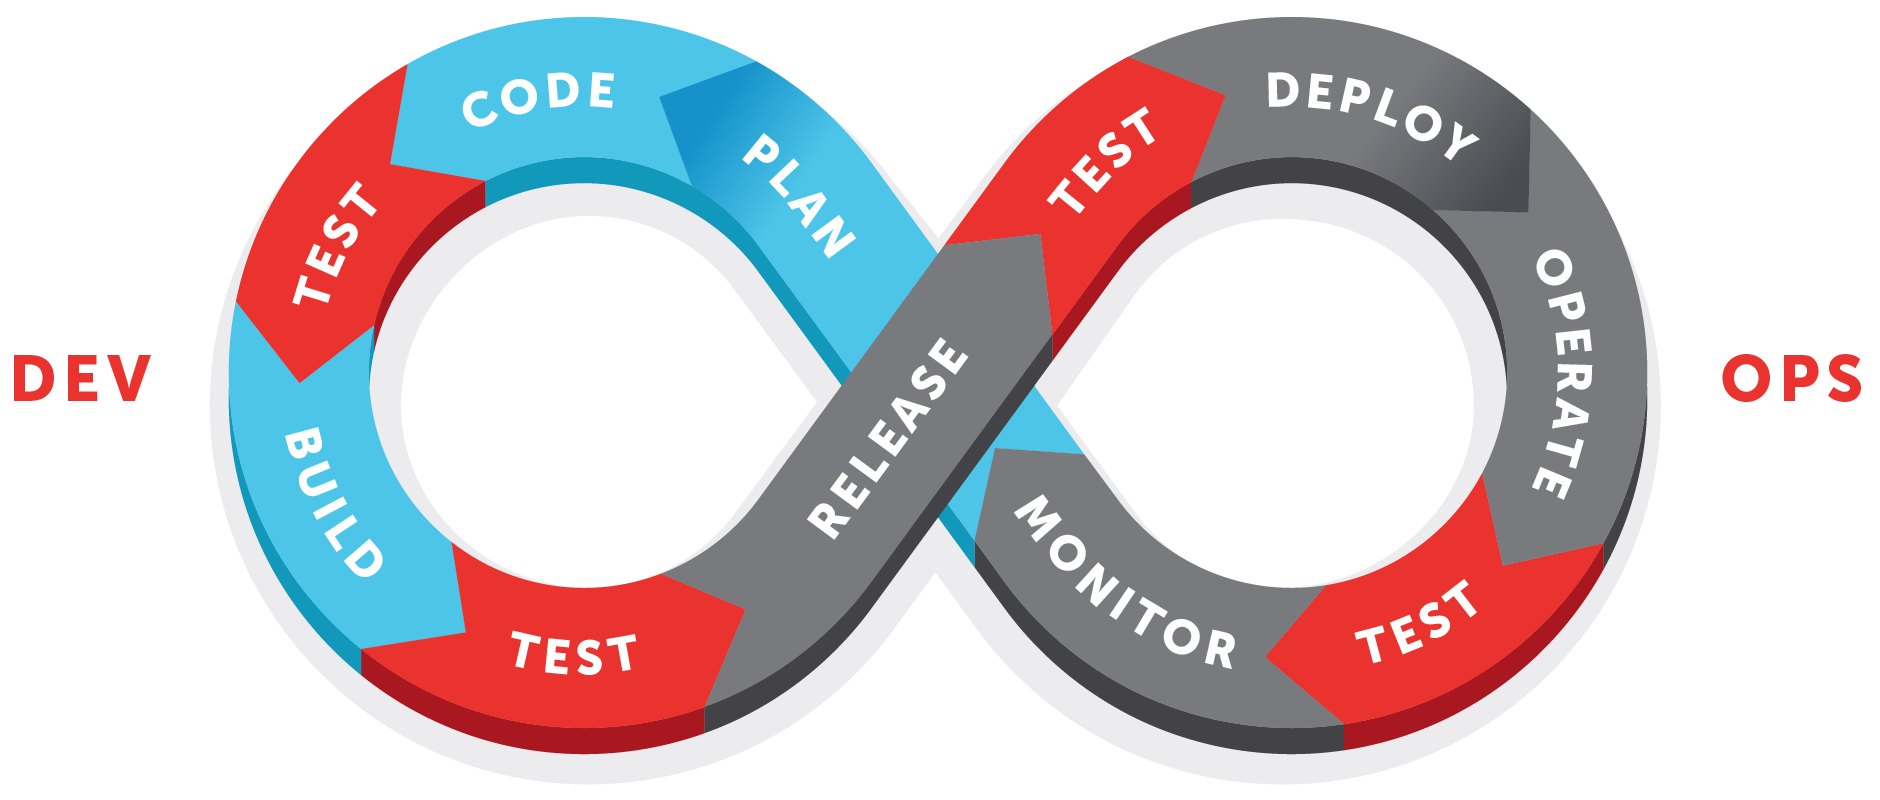 continuous testing loop